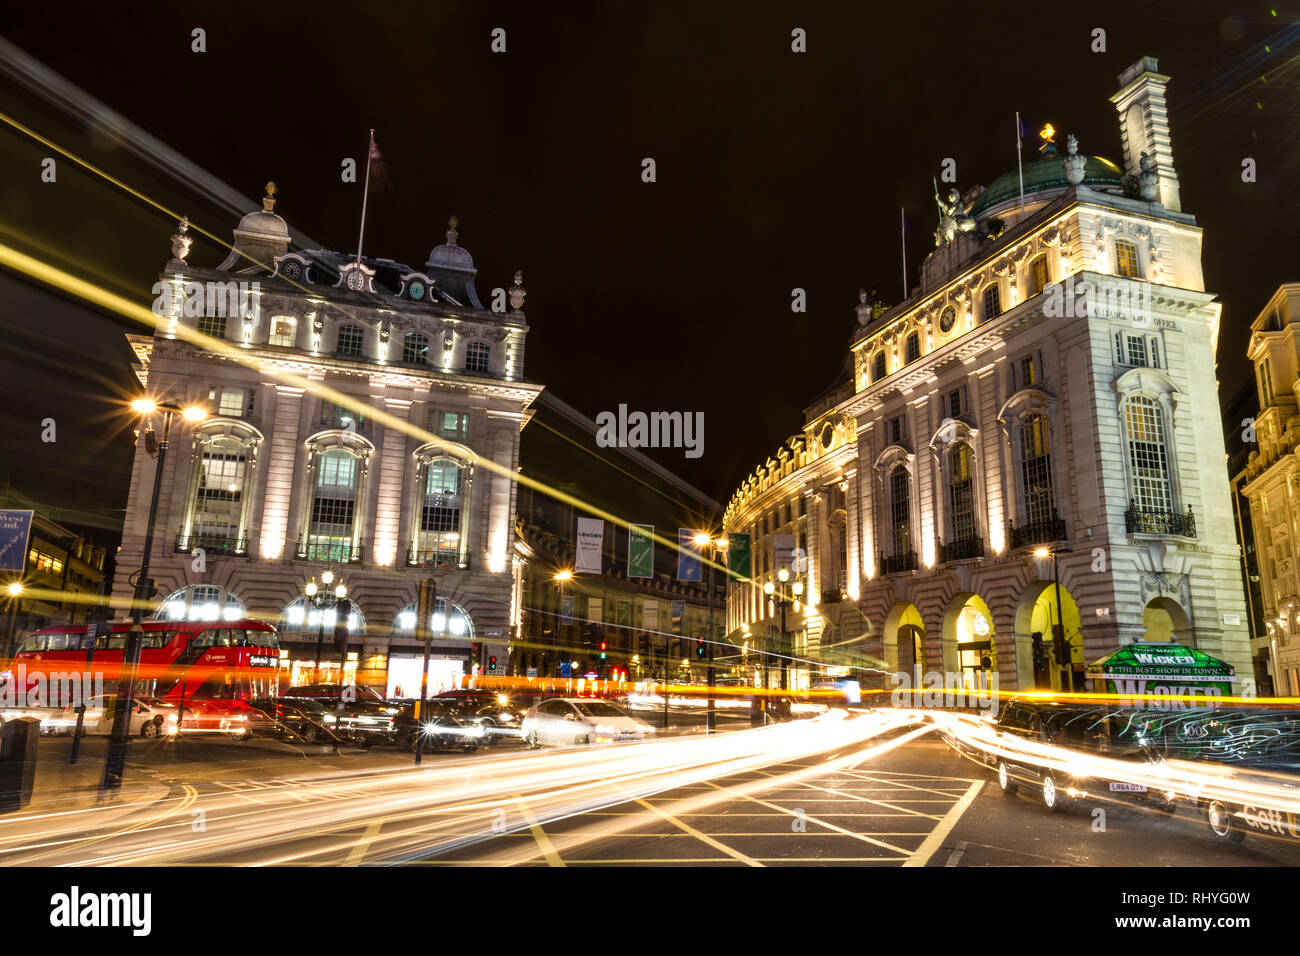 Piccadilly Circus by night - Stock Image